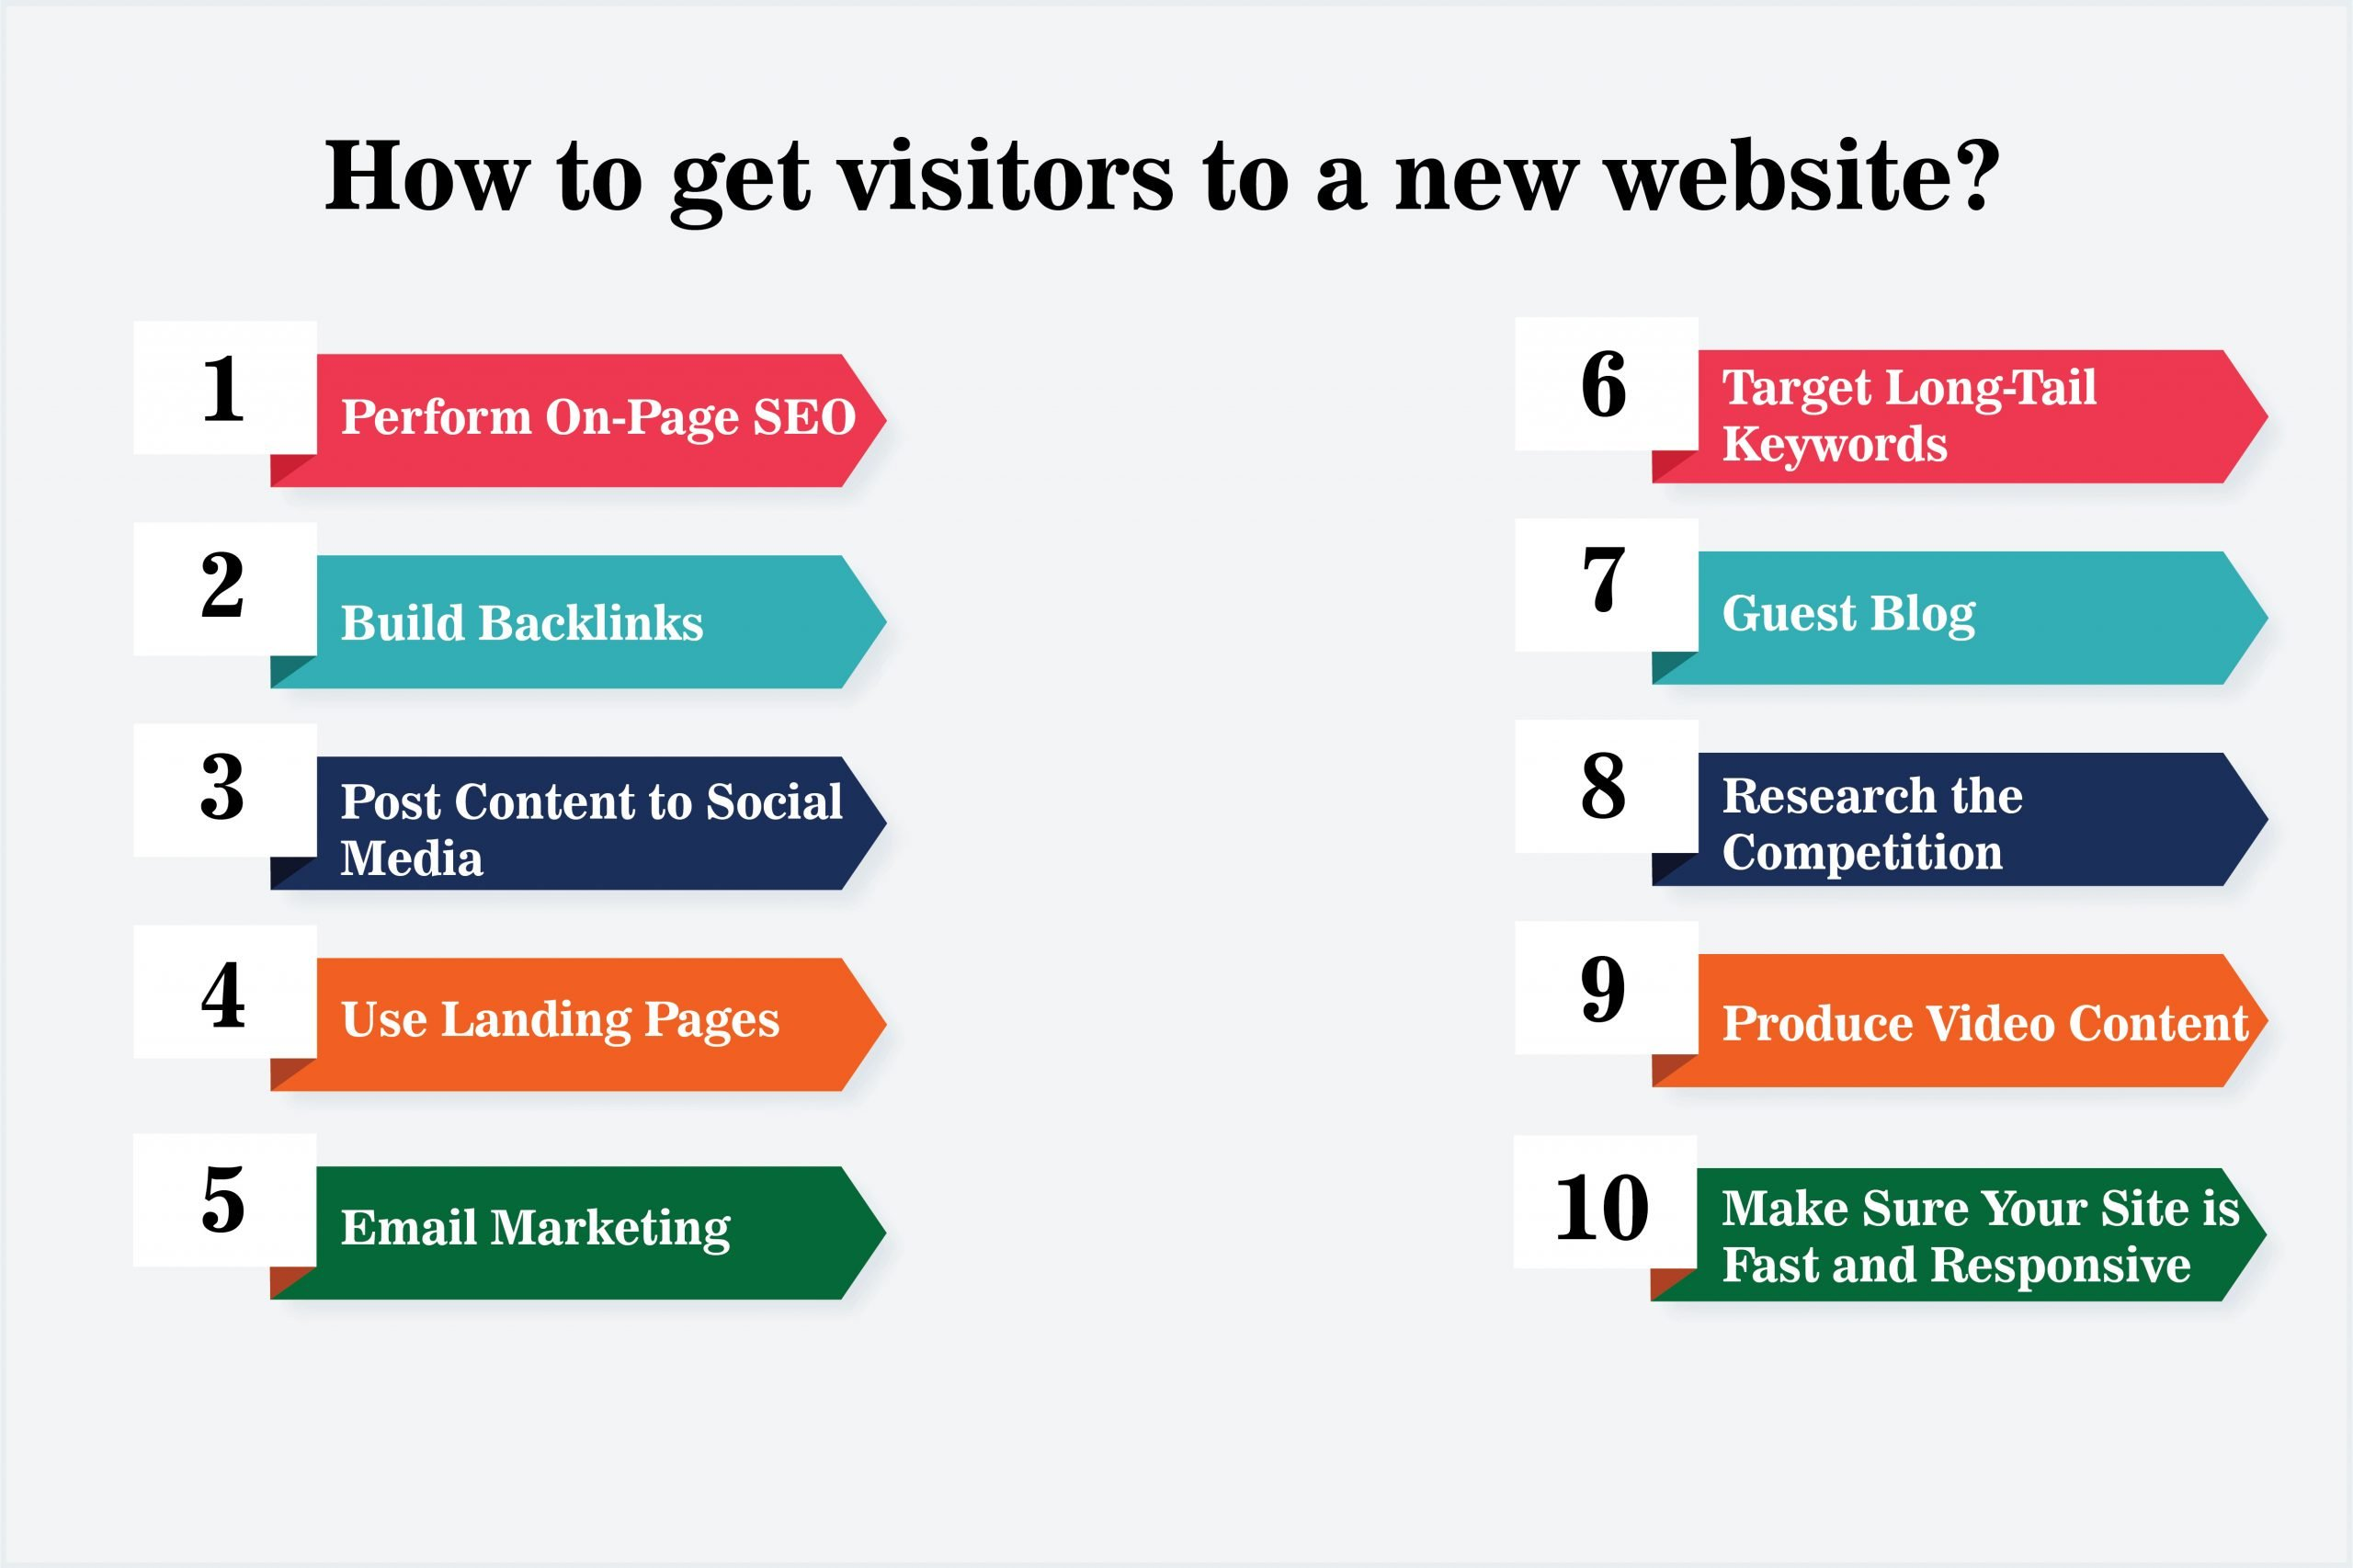 How to get visitors to a new website